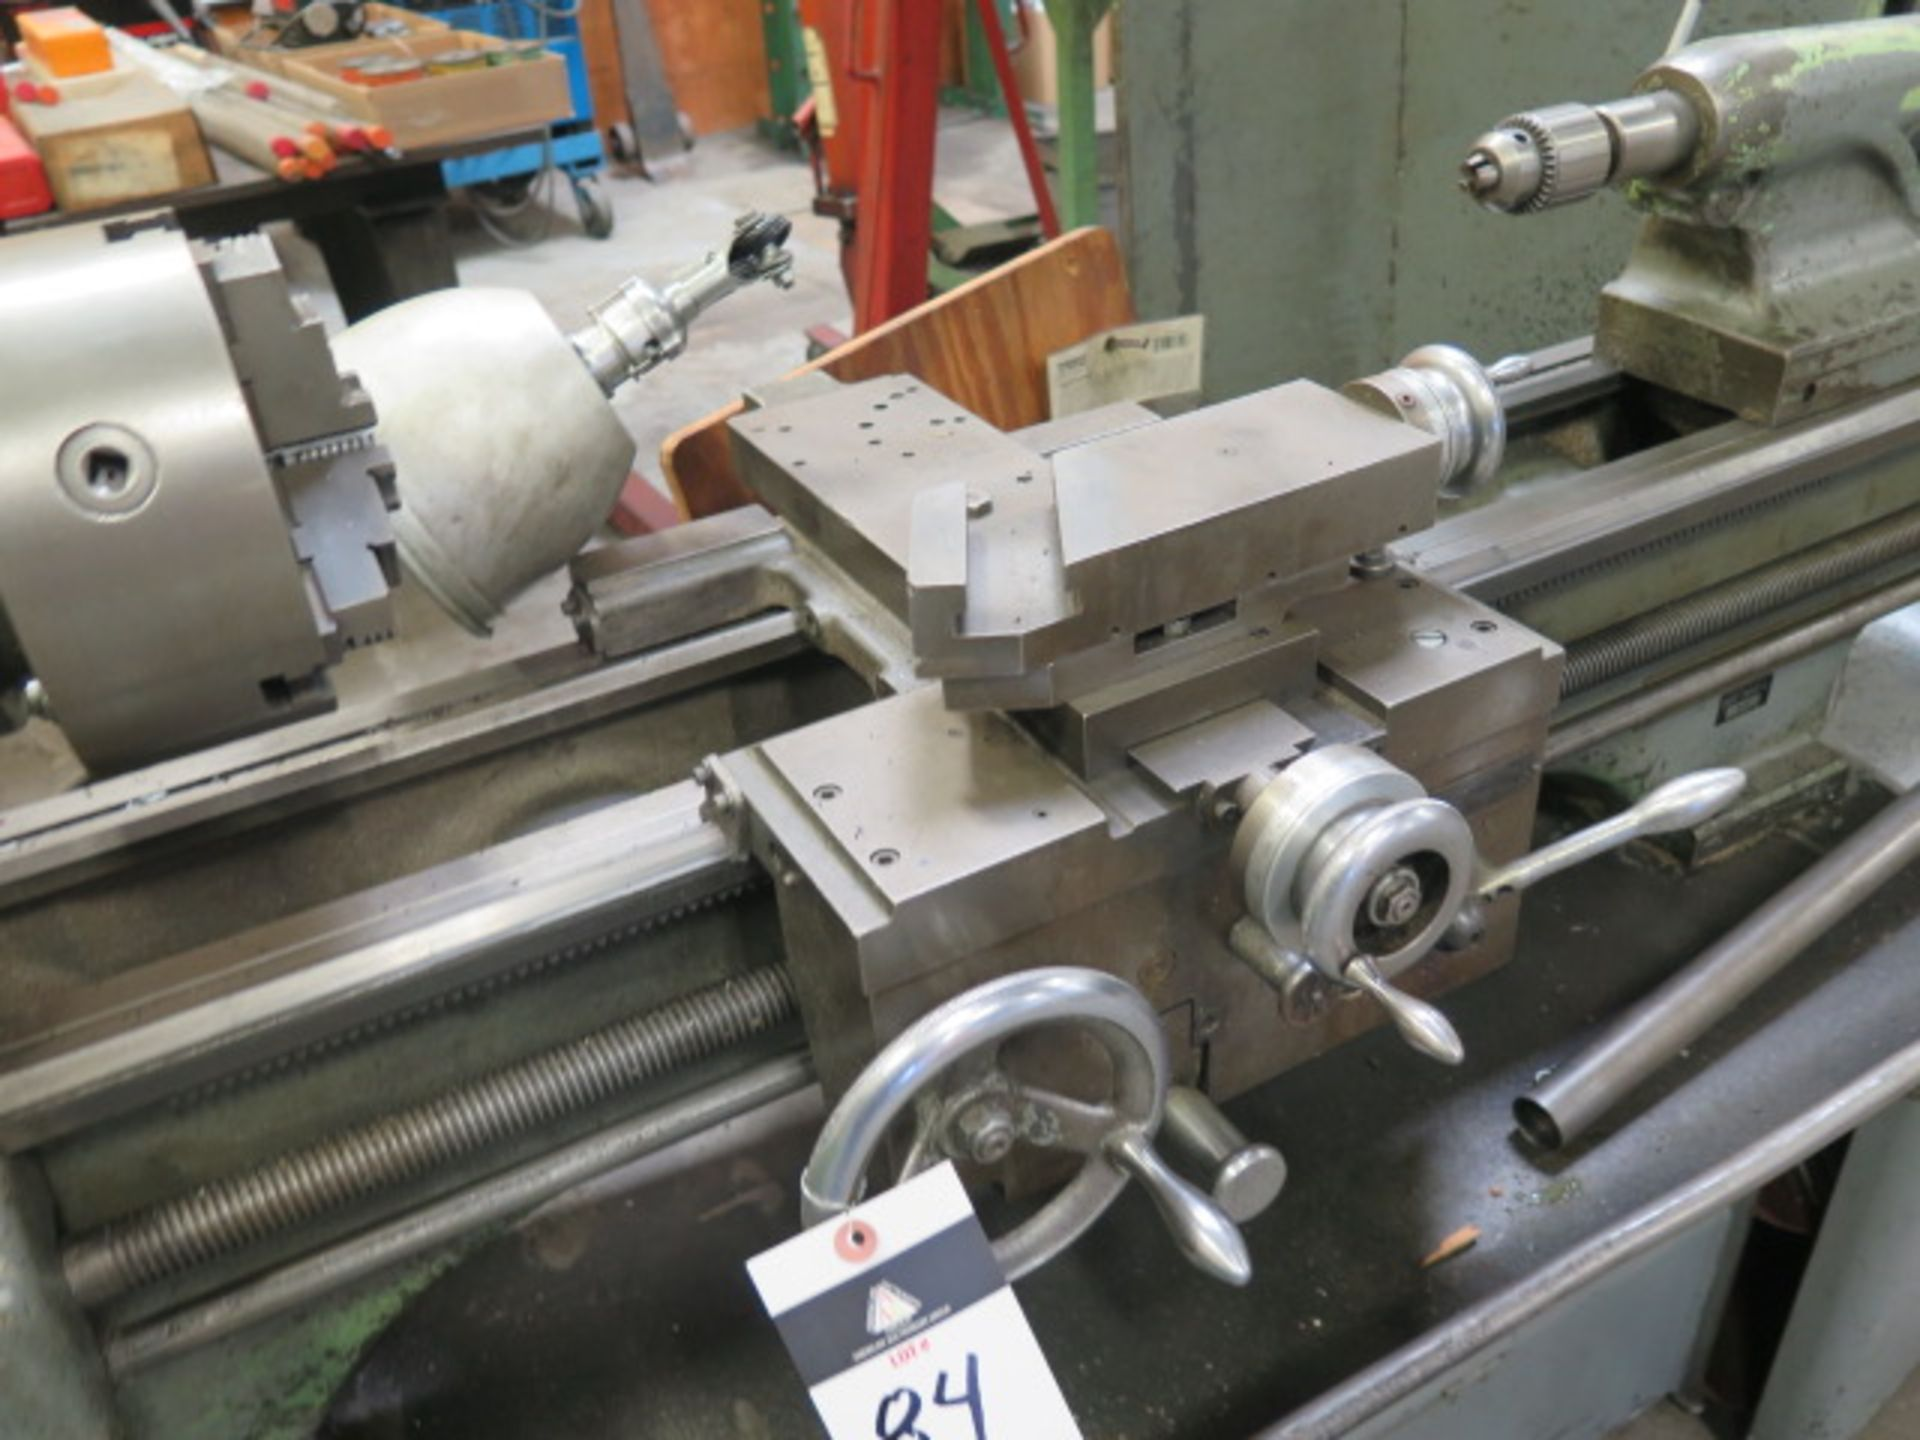 """Lot 84 - Clausing 15 15"""" x 42"""" Geared Head Lathe w/ 40-1800 RPM, Inch Threading, Tailstock 5C Collet Closer"""